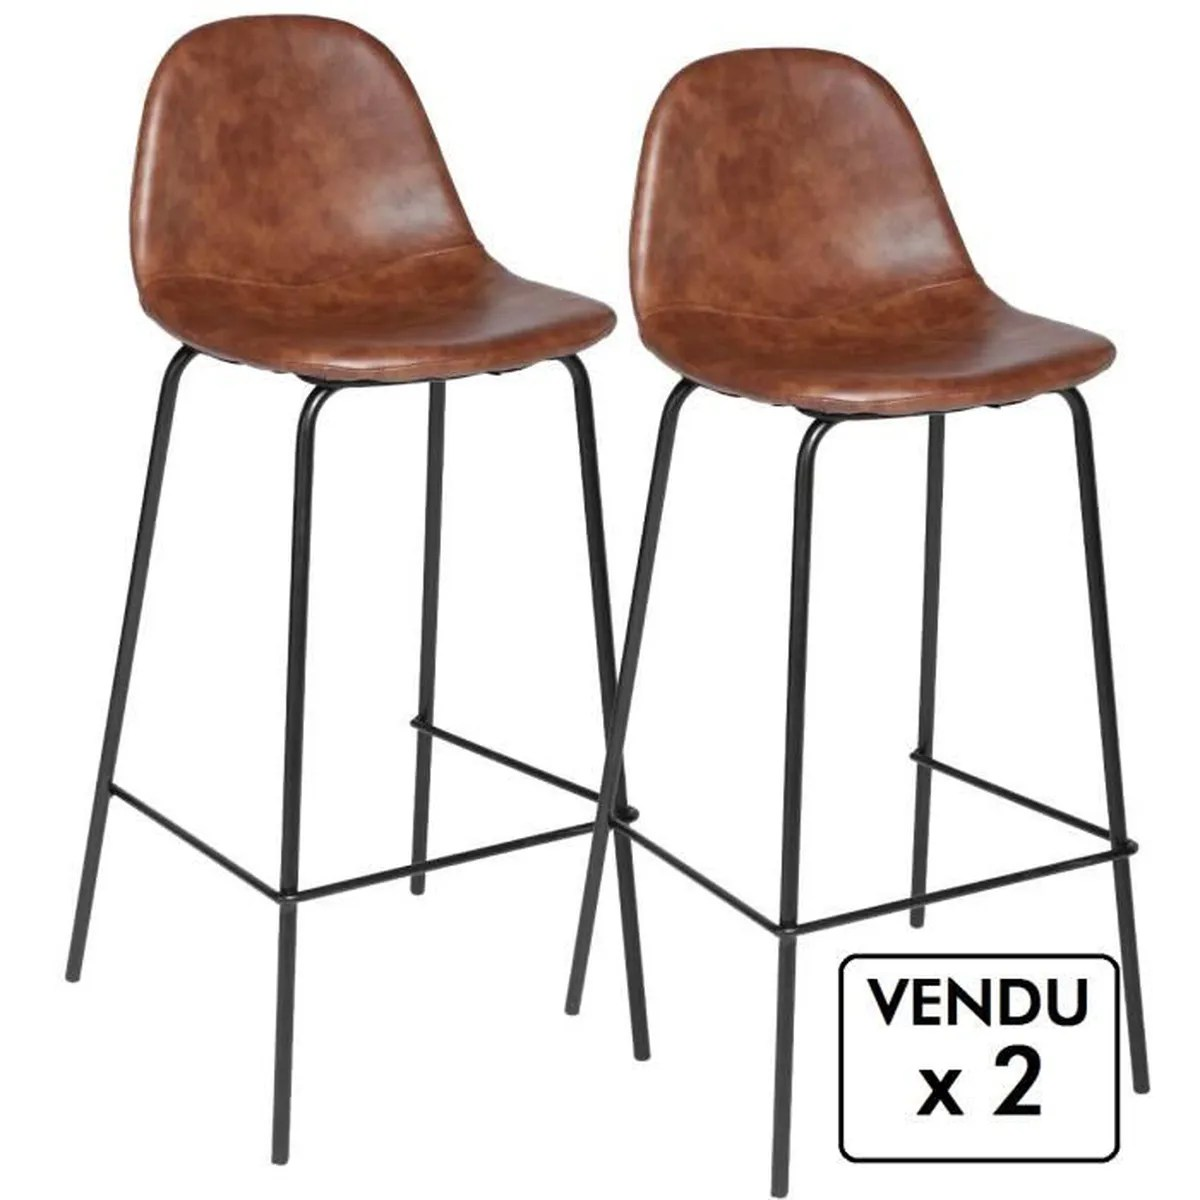 Tabourets Bar Style Industriel Lot De 2 Chaises De Bar Style Industriel Coloris